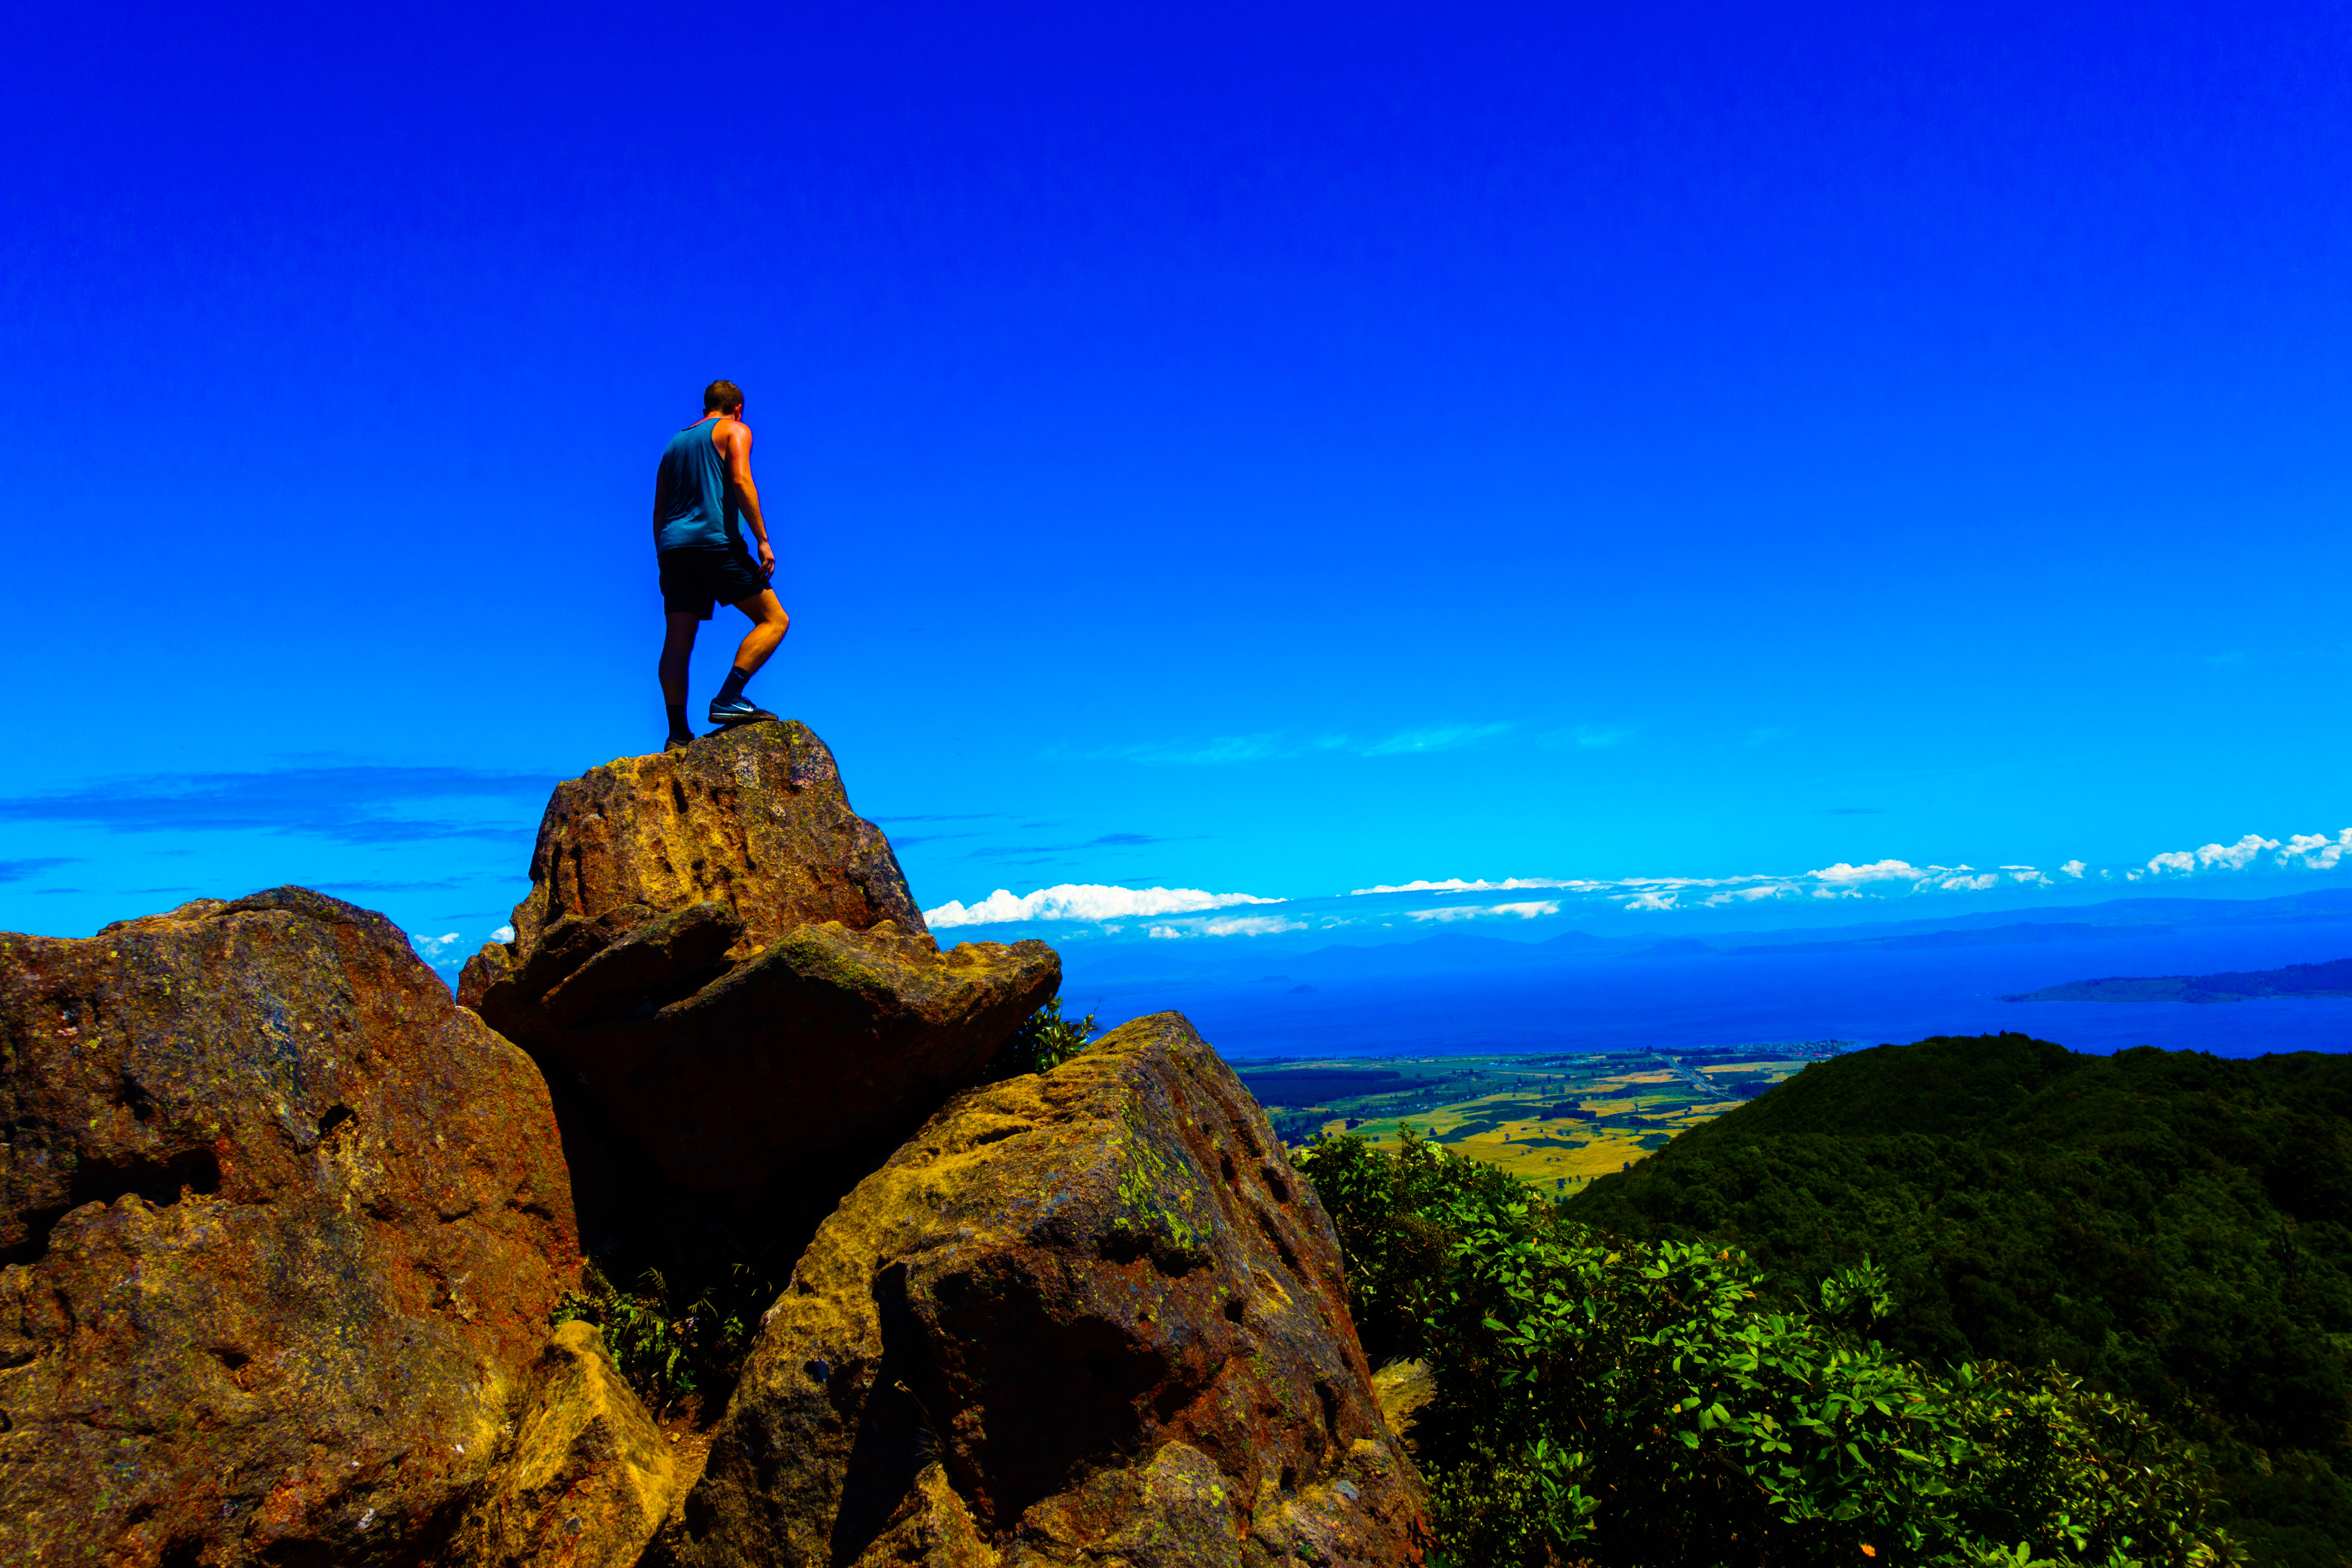 Moving to New Zealand with Under $3,000 -